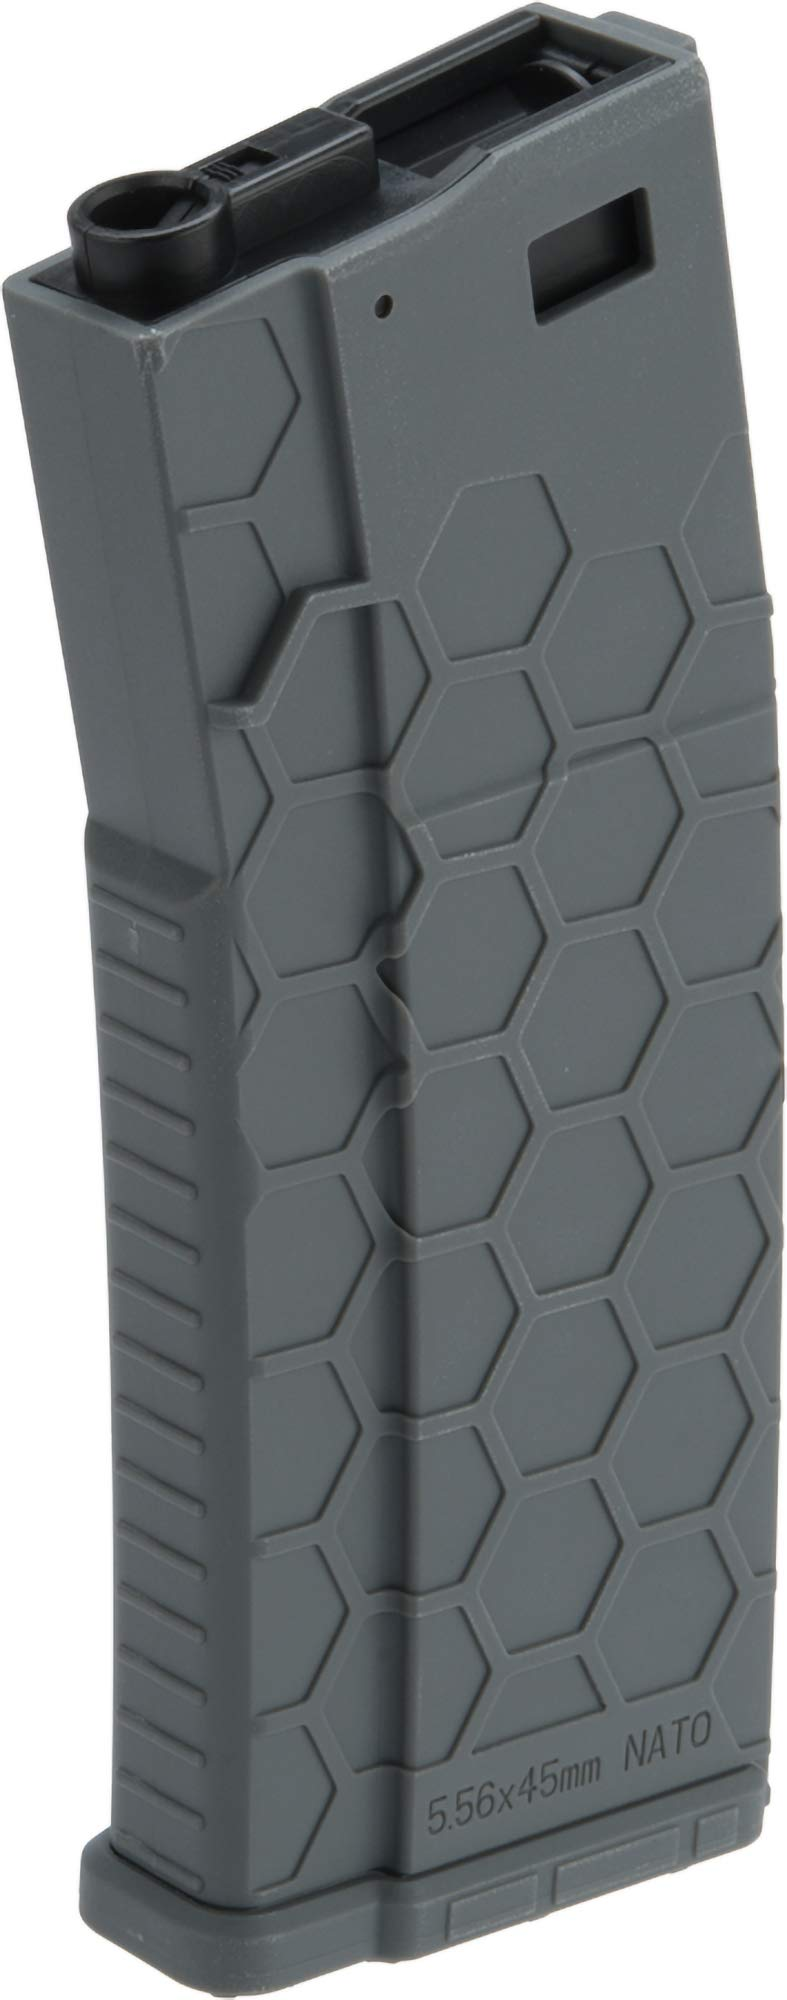 Evike Hexmag Airsoft Polymer 300rd FlashMag Magazine for M4 / M16 Series Airsoft AEG Rifles (Color: Grey/Single) by Evike